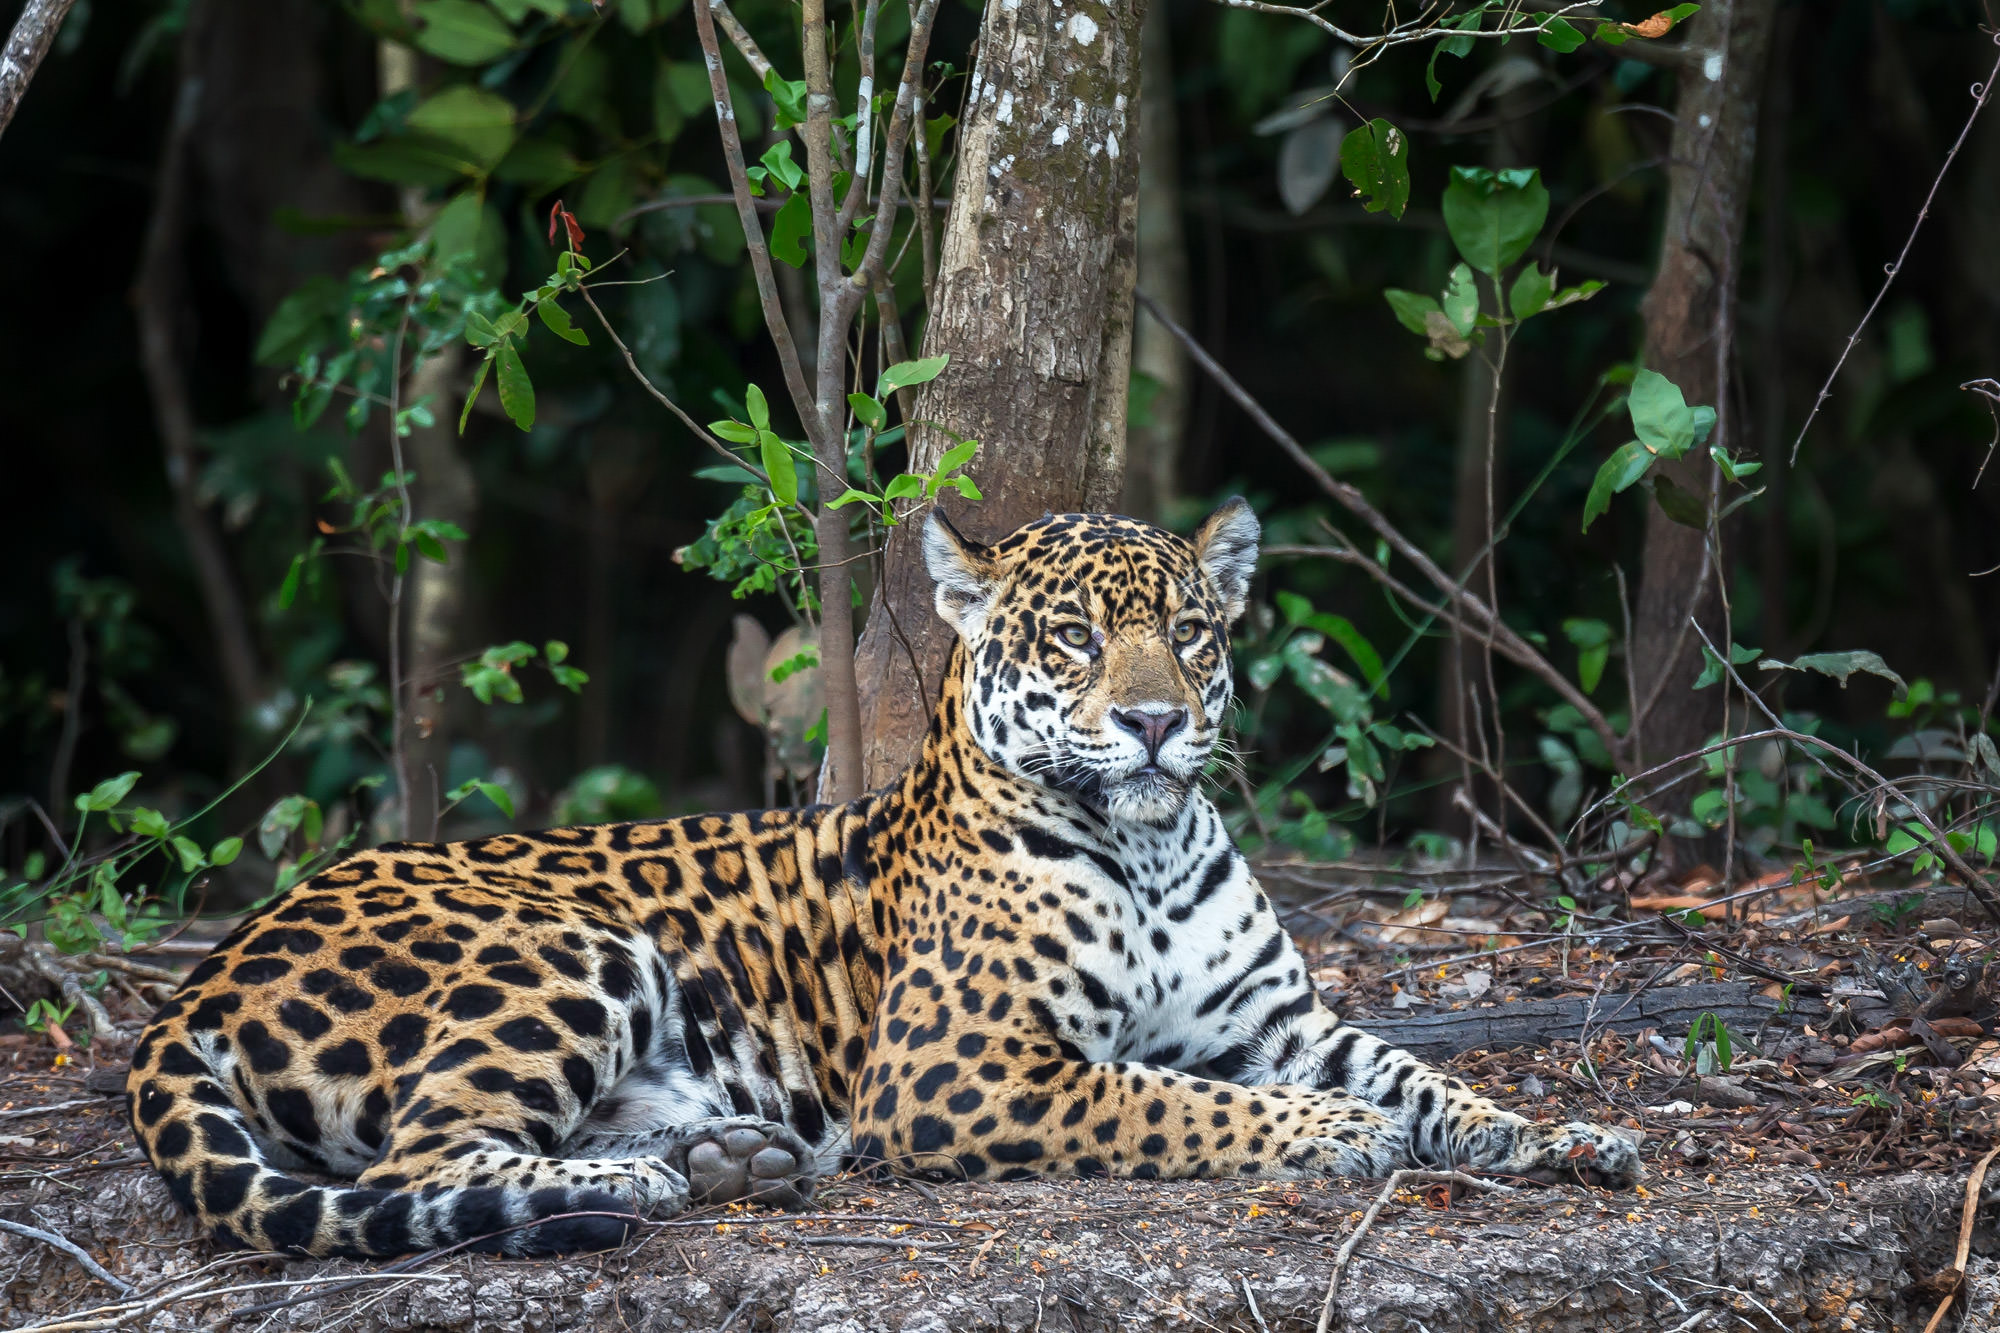 Jaguar Fine Art Photography A Limited Edition photograph of a Jaguar that appears to be posing for a portrait at The Pantanal...